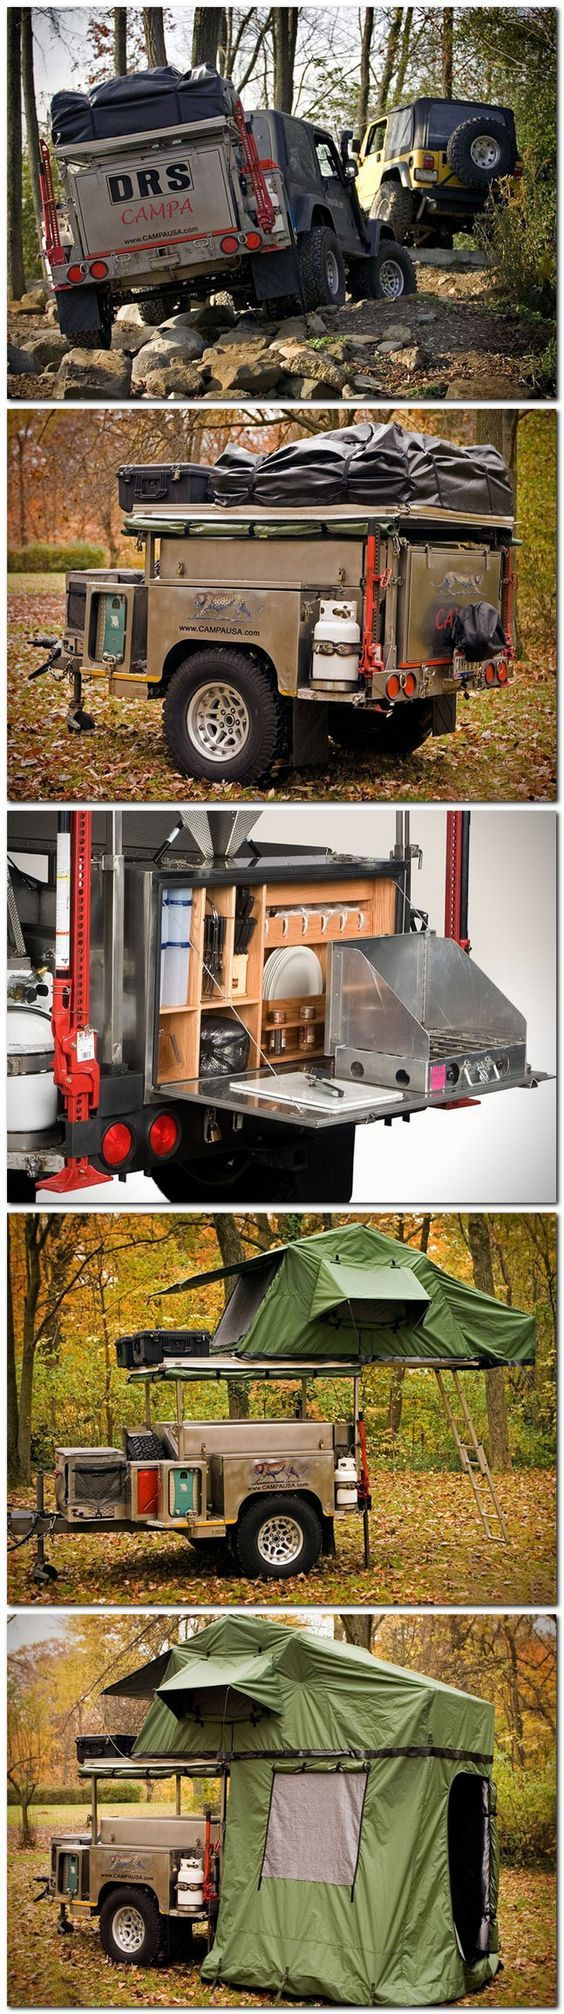 22 Best Bush Trailer Project Images On Pinterest Camp Trailers M101 Wiring Diagram All Terrain Camping By Campa Usa